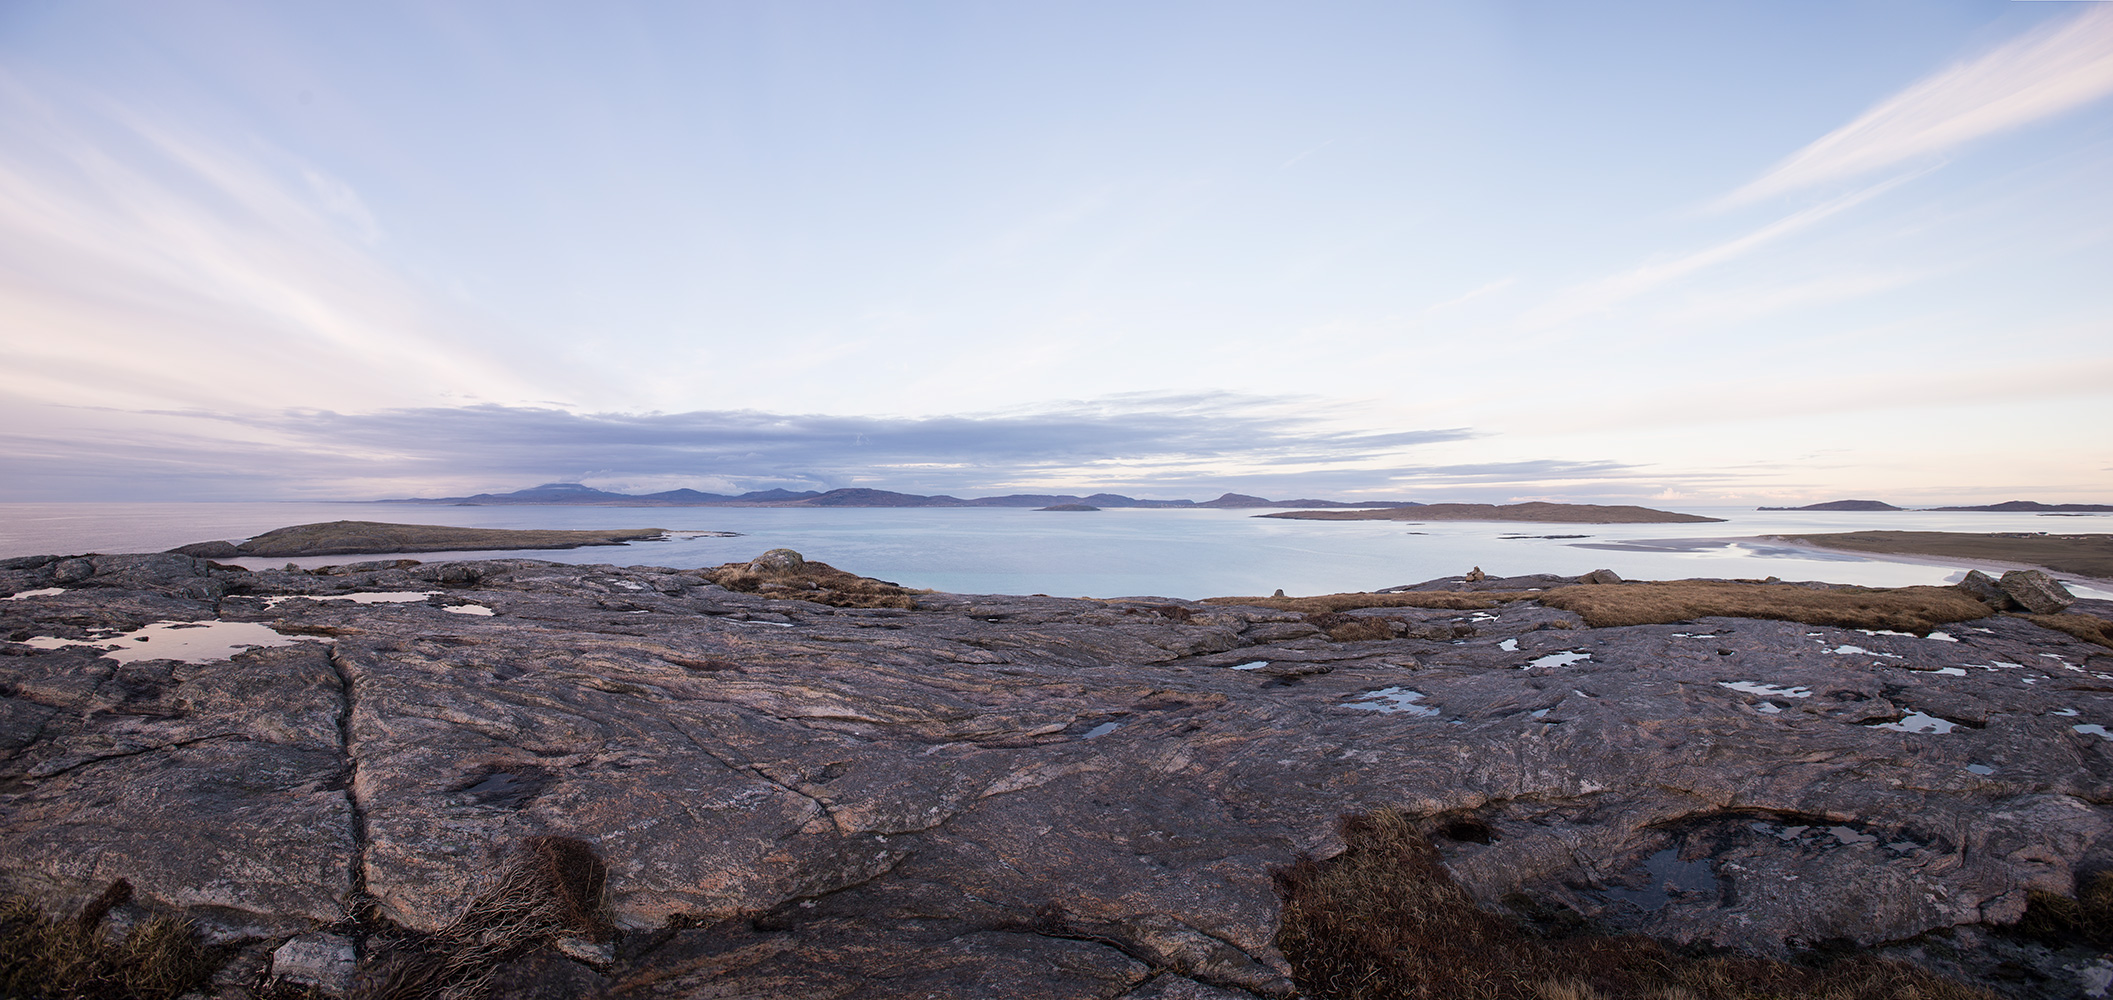 A panorama of four images, looking north over the Sound of Barra to Eriskay and Uist from Beinn Sgurabhal